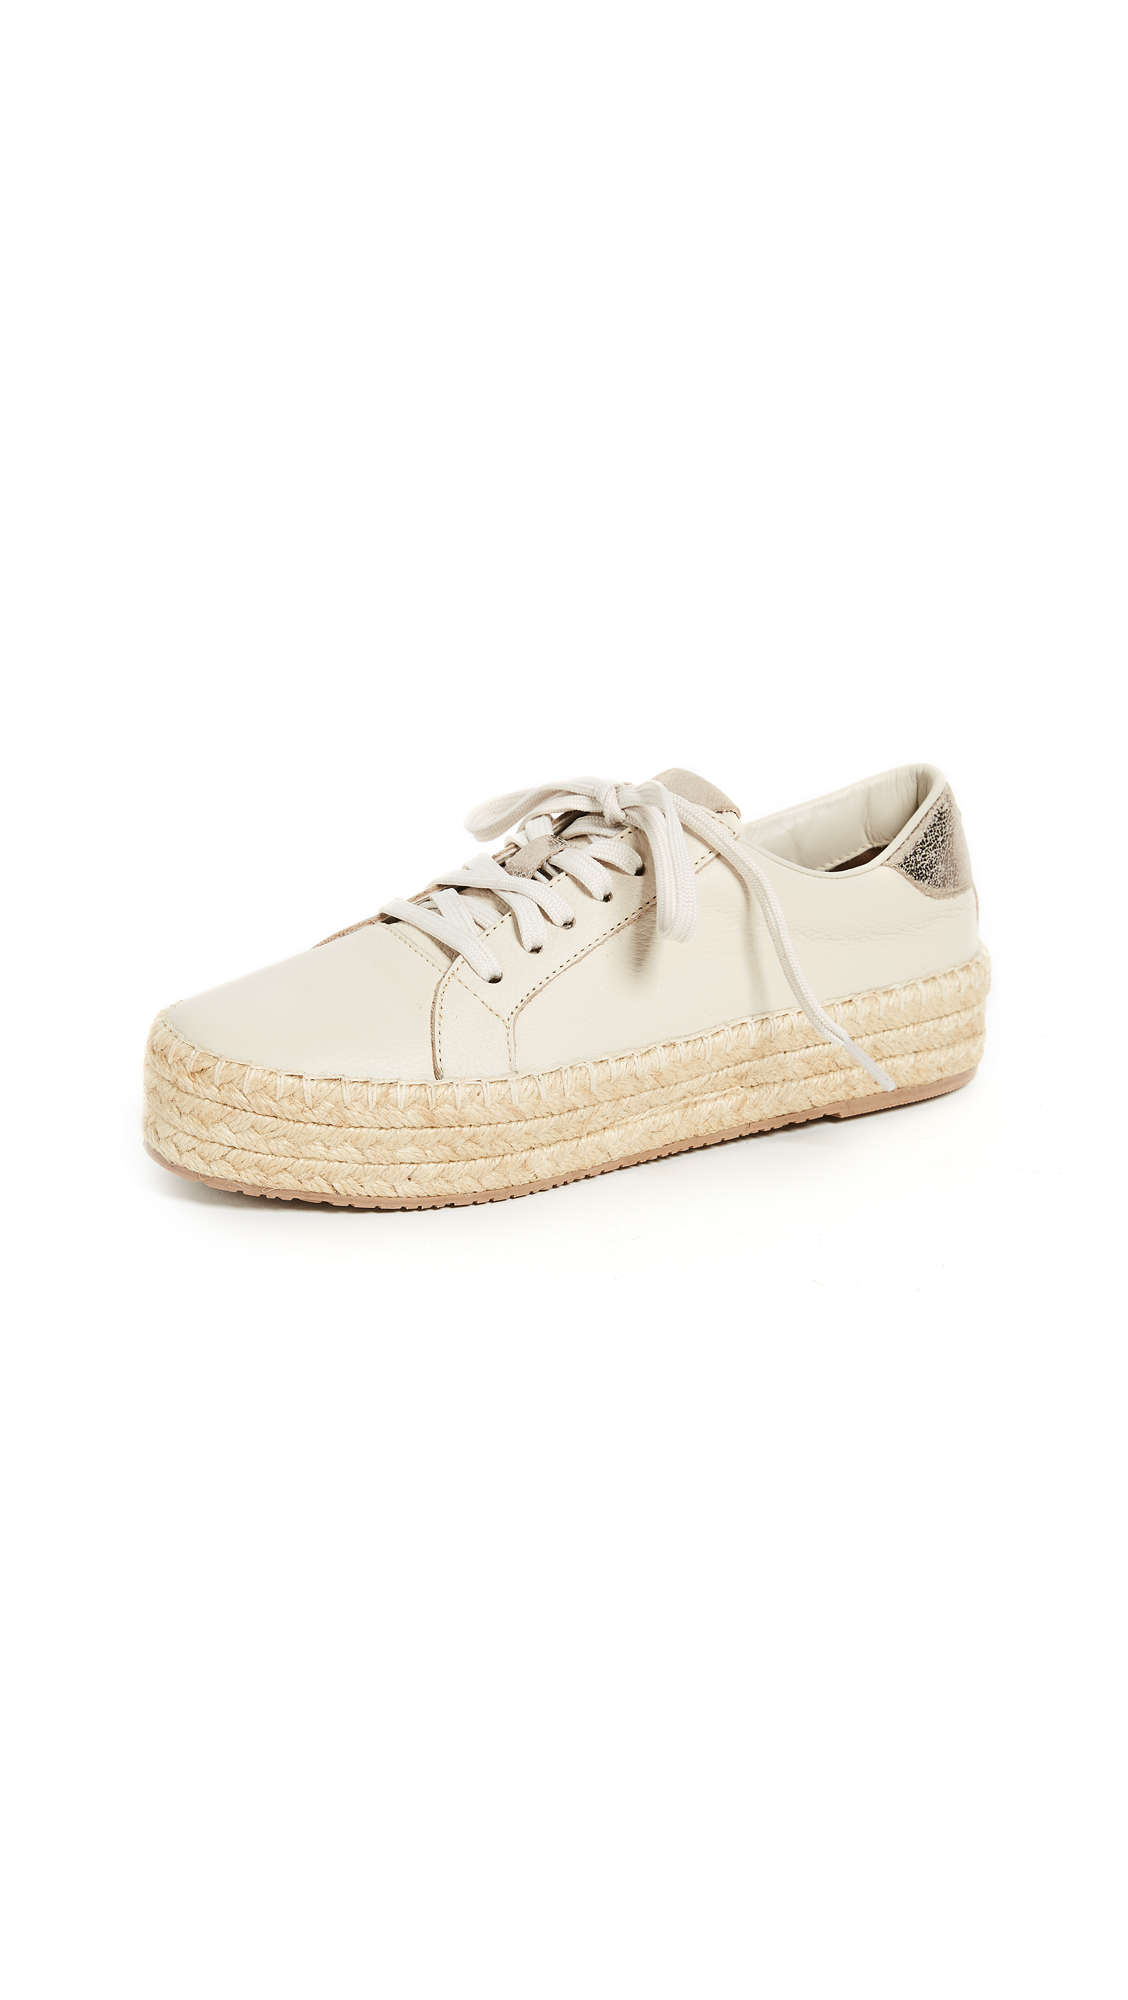 KAANAS Arizona Espadrilles - Cream